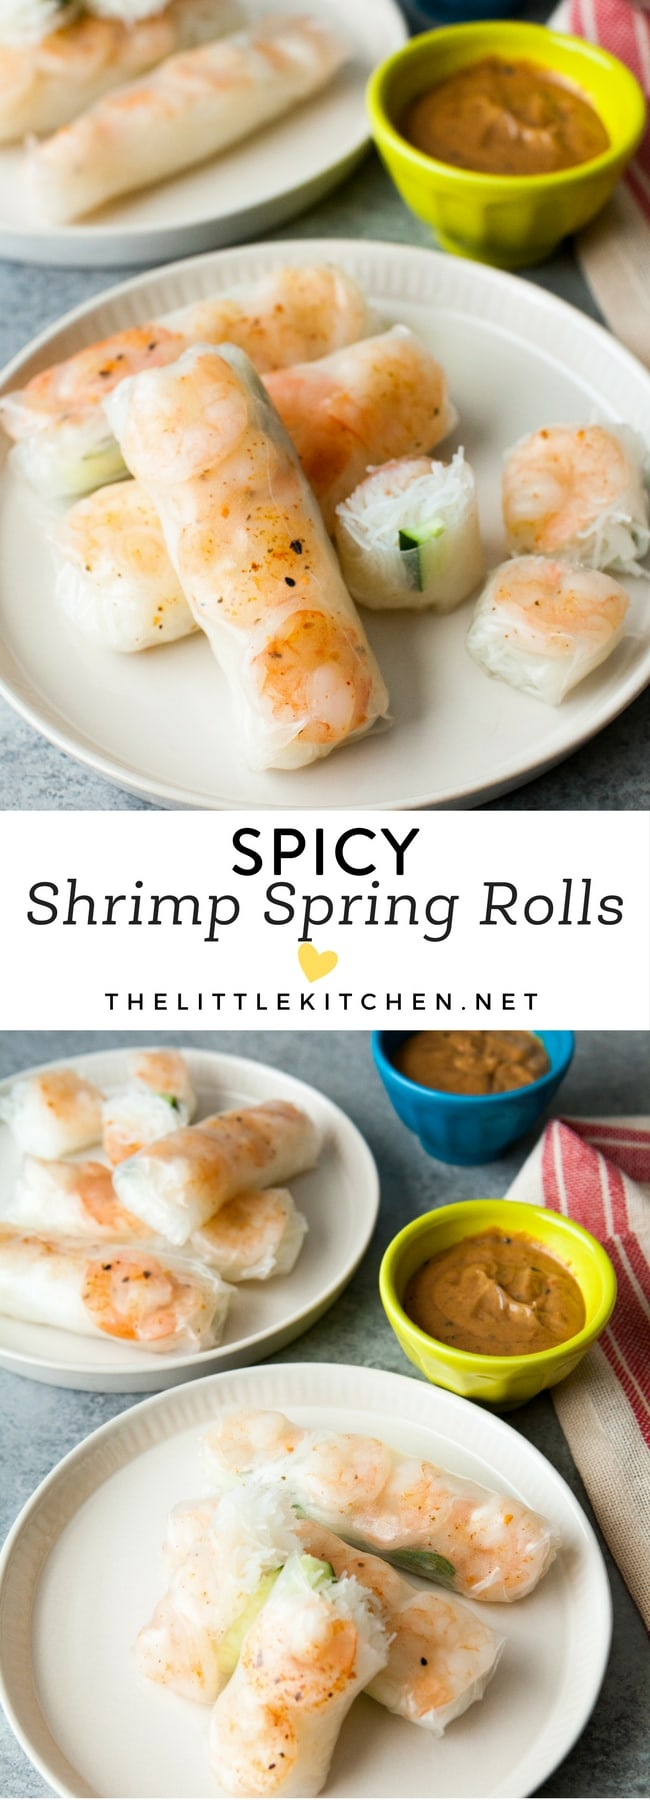 ... grilled shrimp grilled jerk shrimp roll grilled shrimp rolls grilled